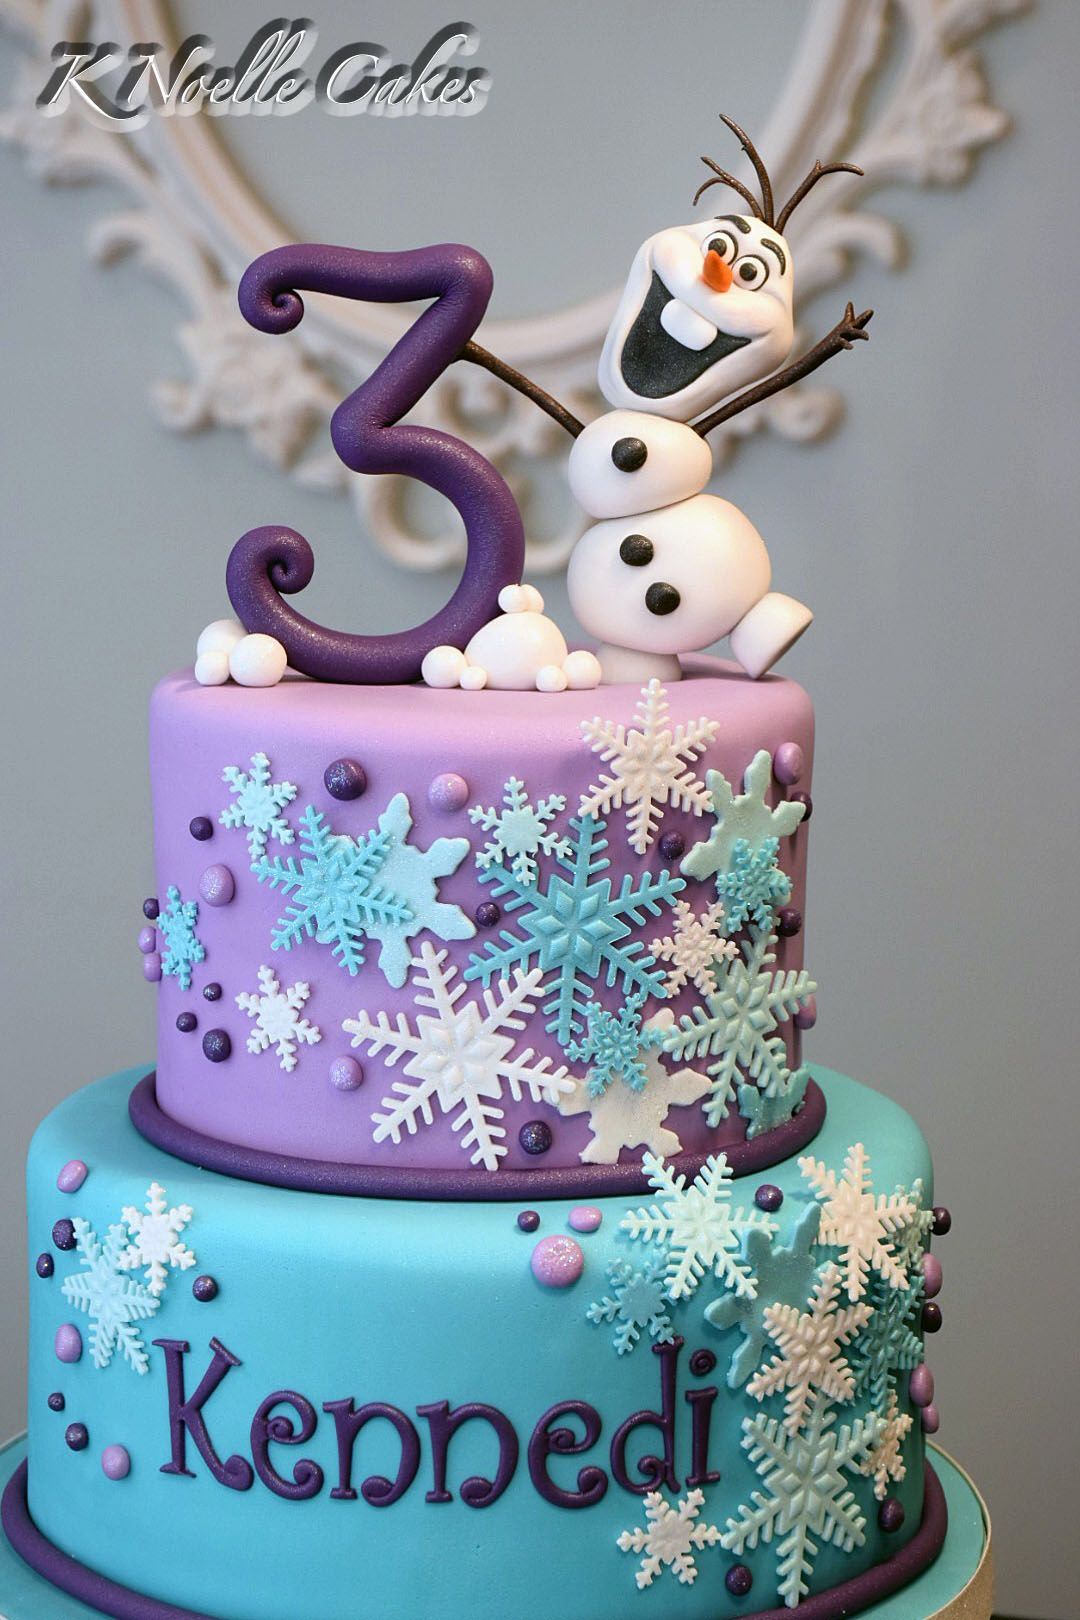 Decoration Olaf Anniversaire Frozen Theme Cake With Olaf By K Noelle Cakes Cakes Pinterest